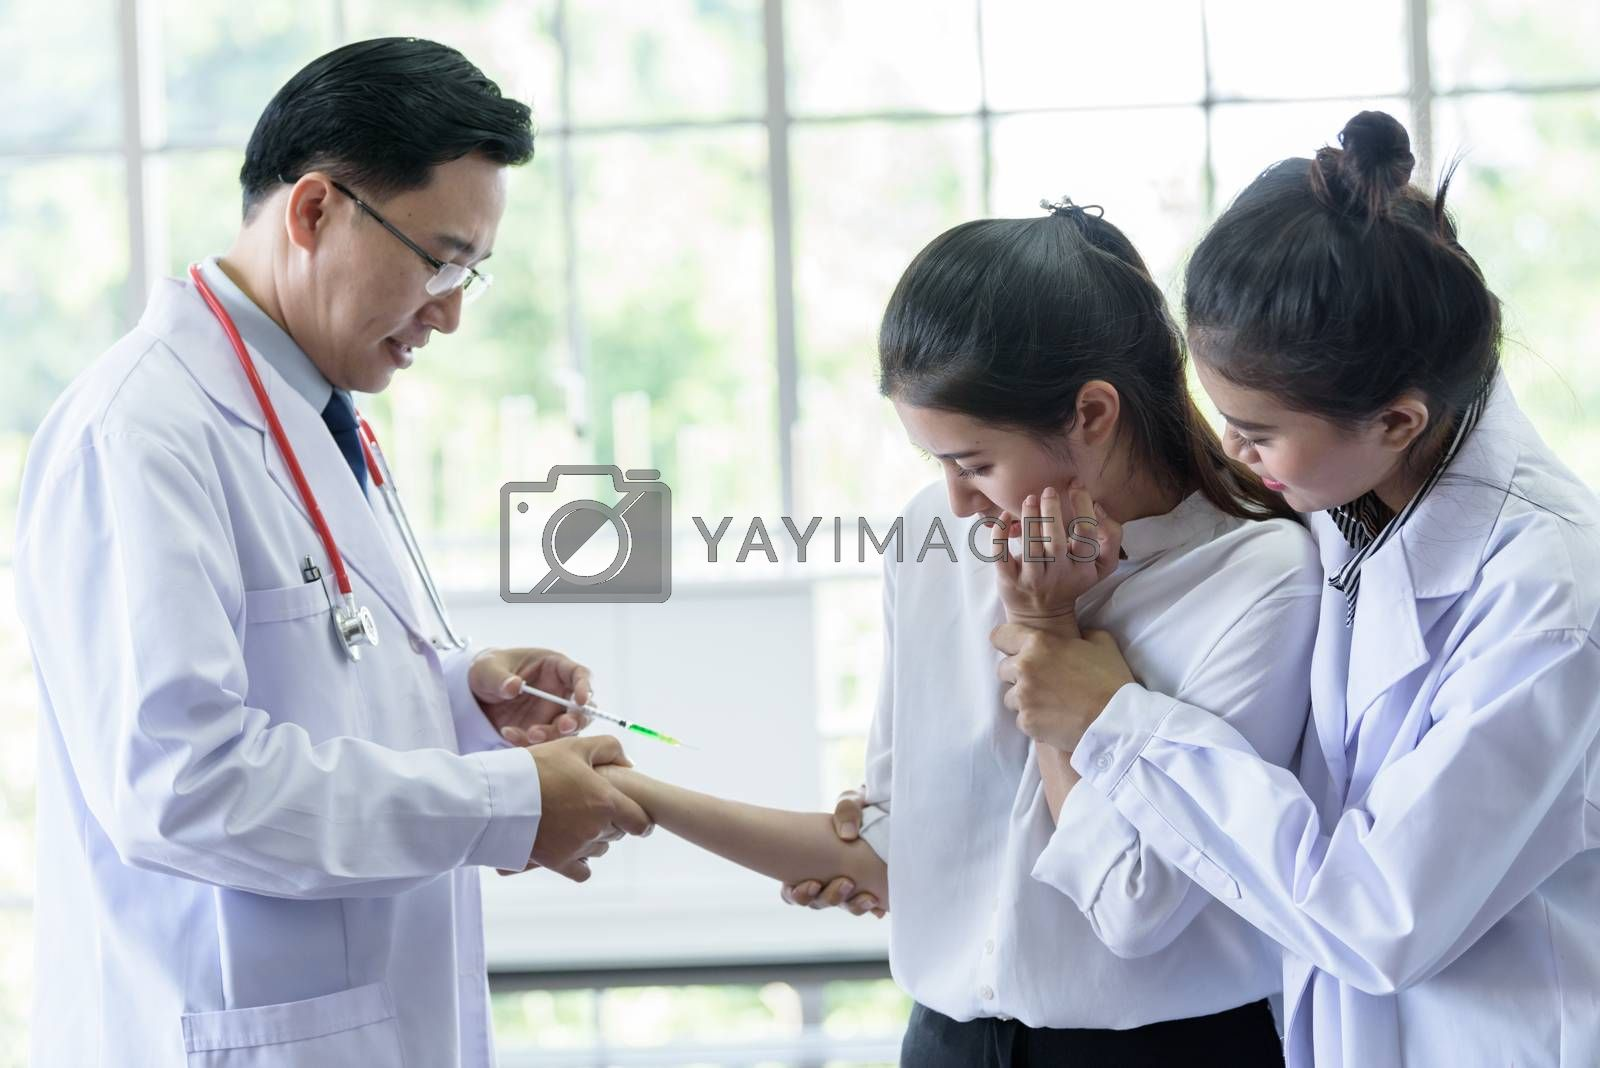 Patient has afraid and scary of syringe and needle. by animagesdesign